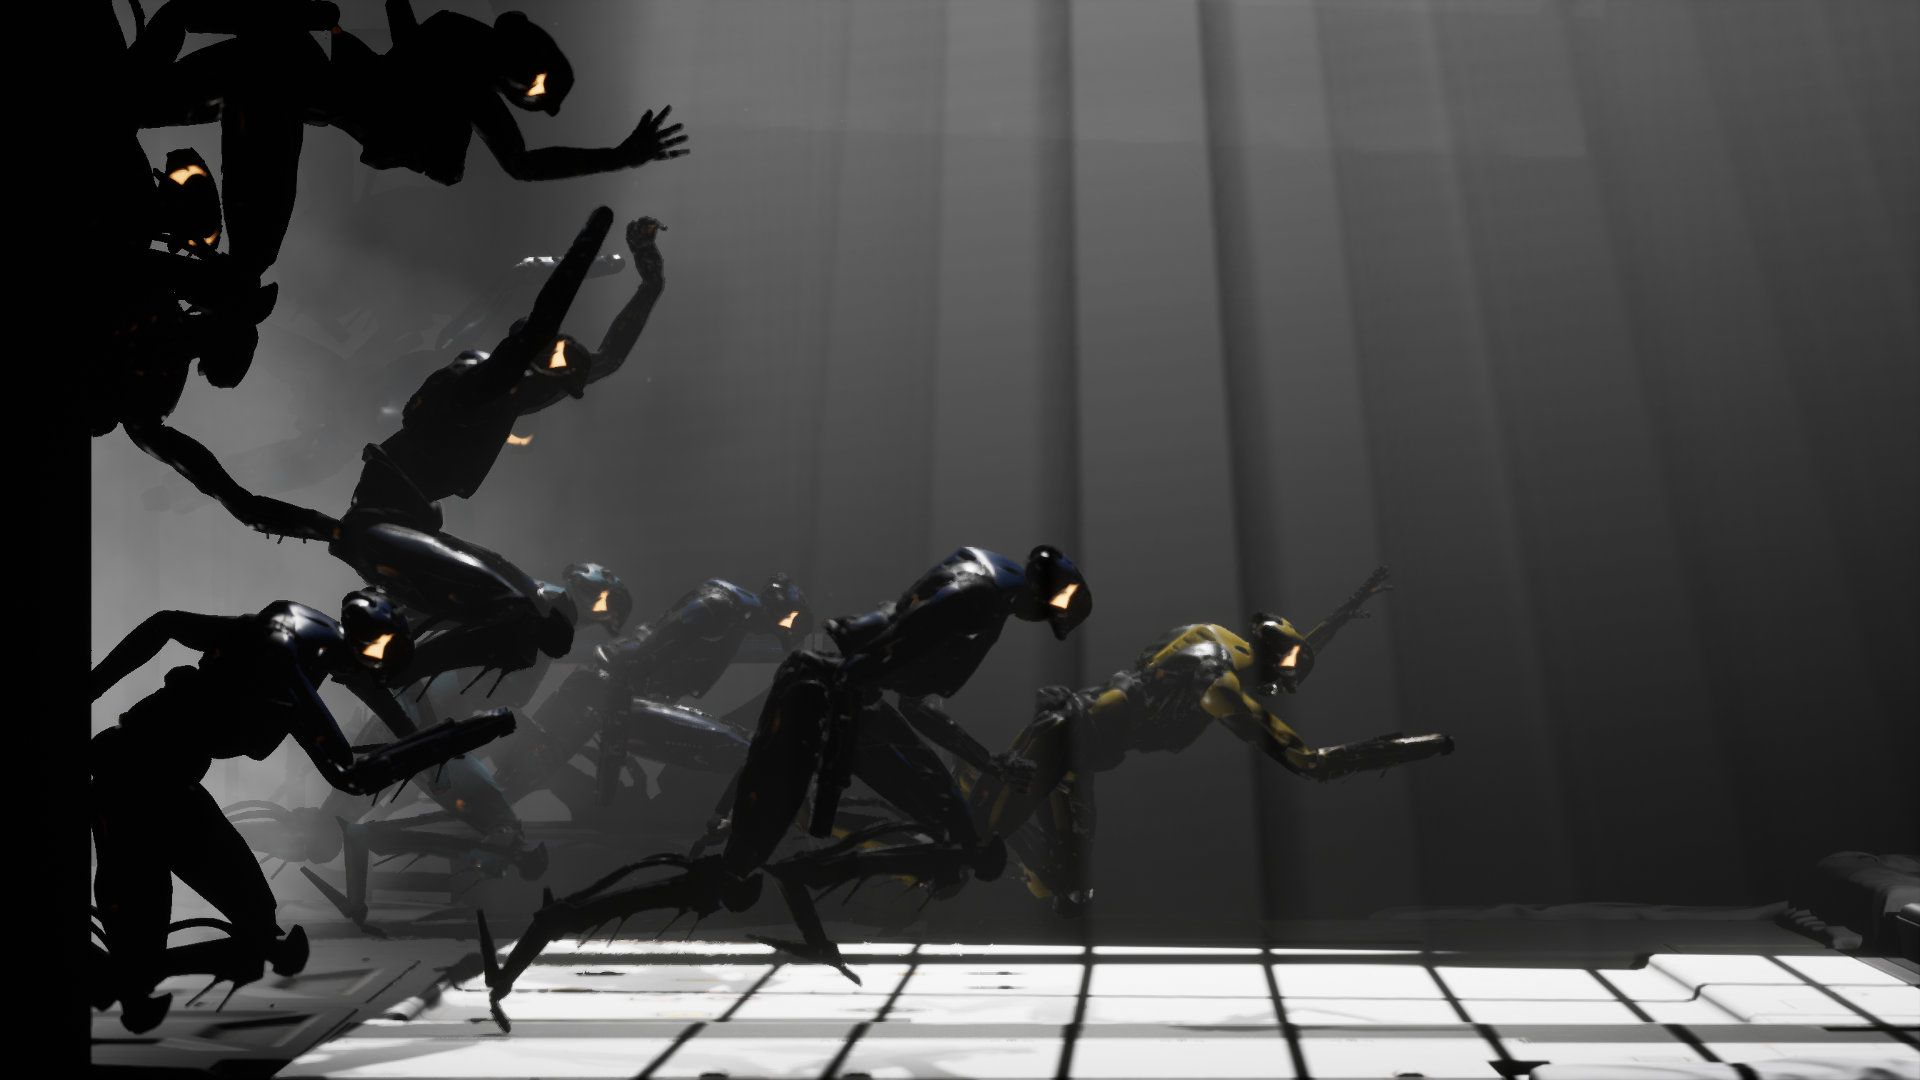 A number of humanoid robots race from the left side of the screen towards the right.